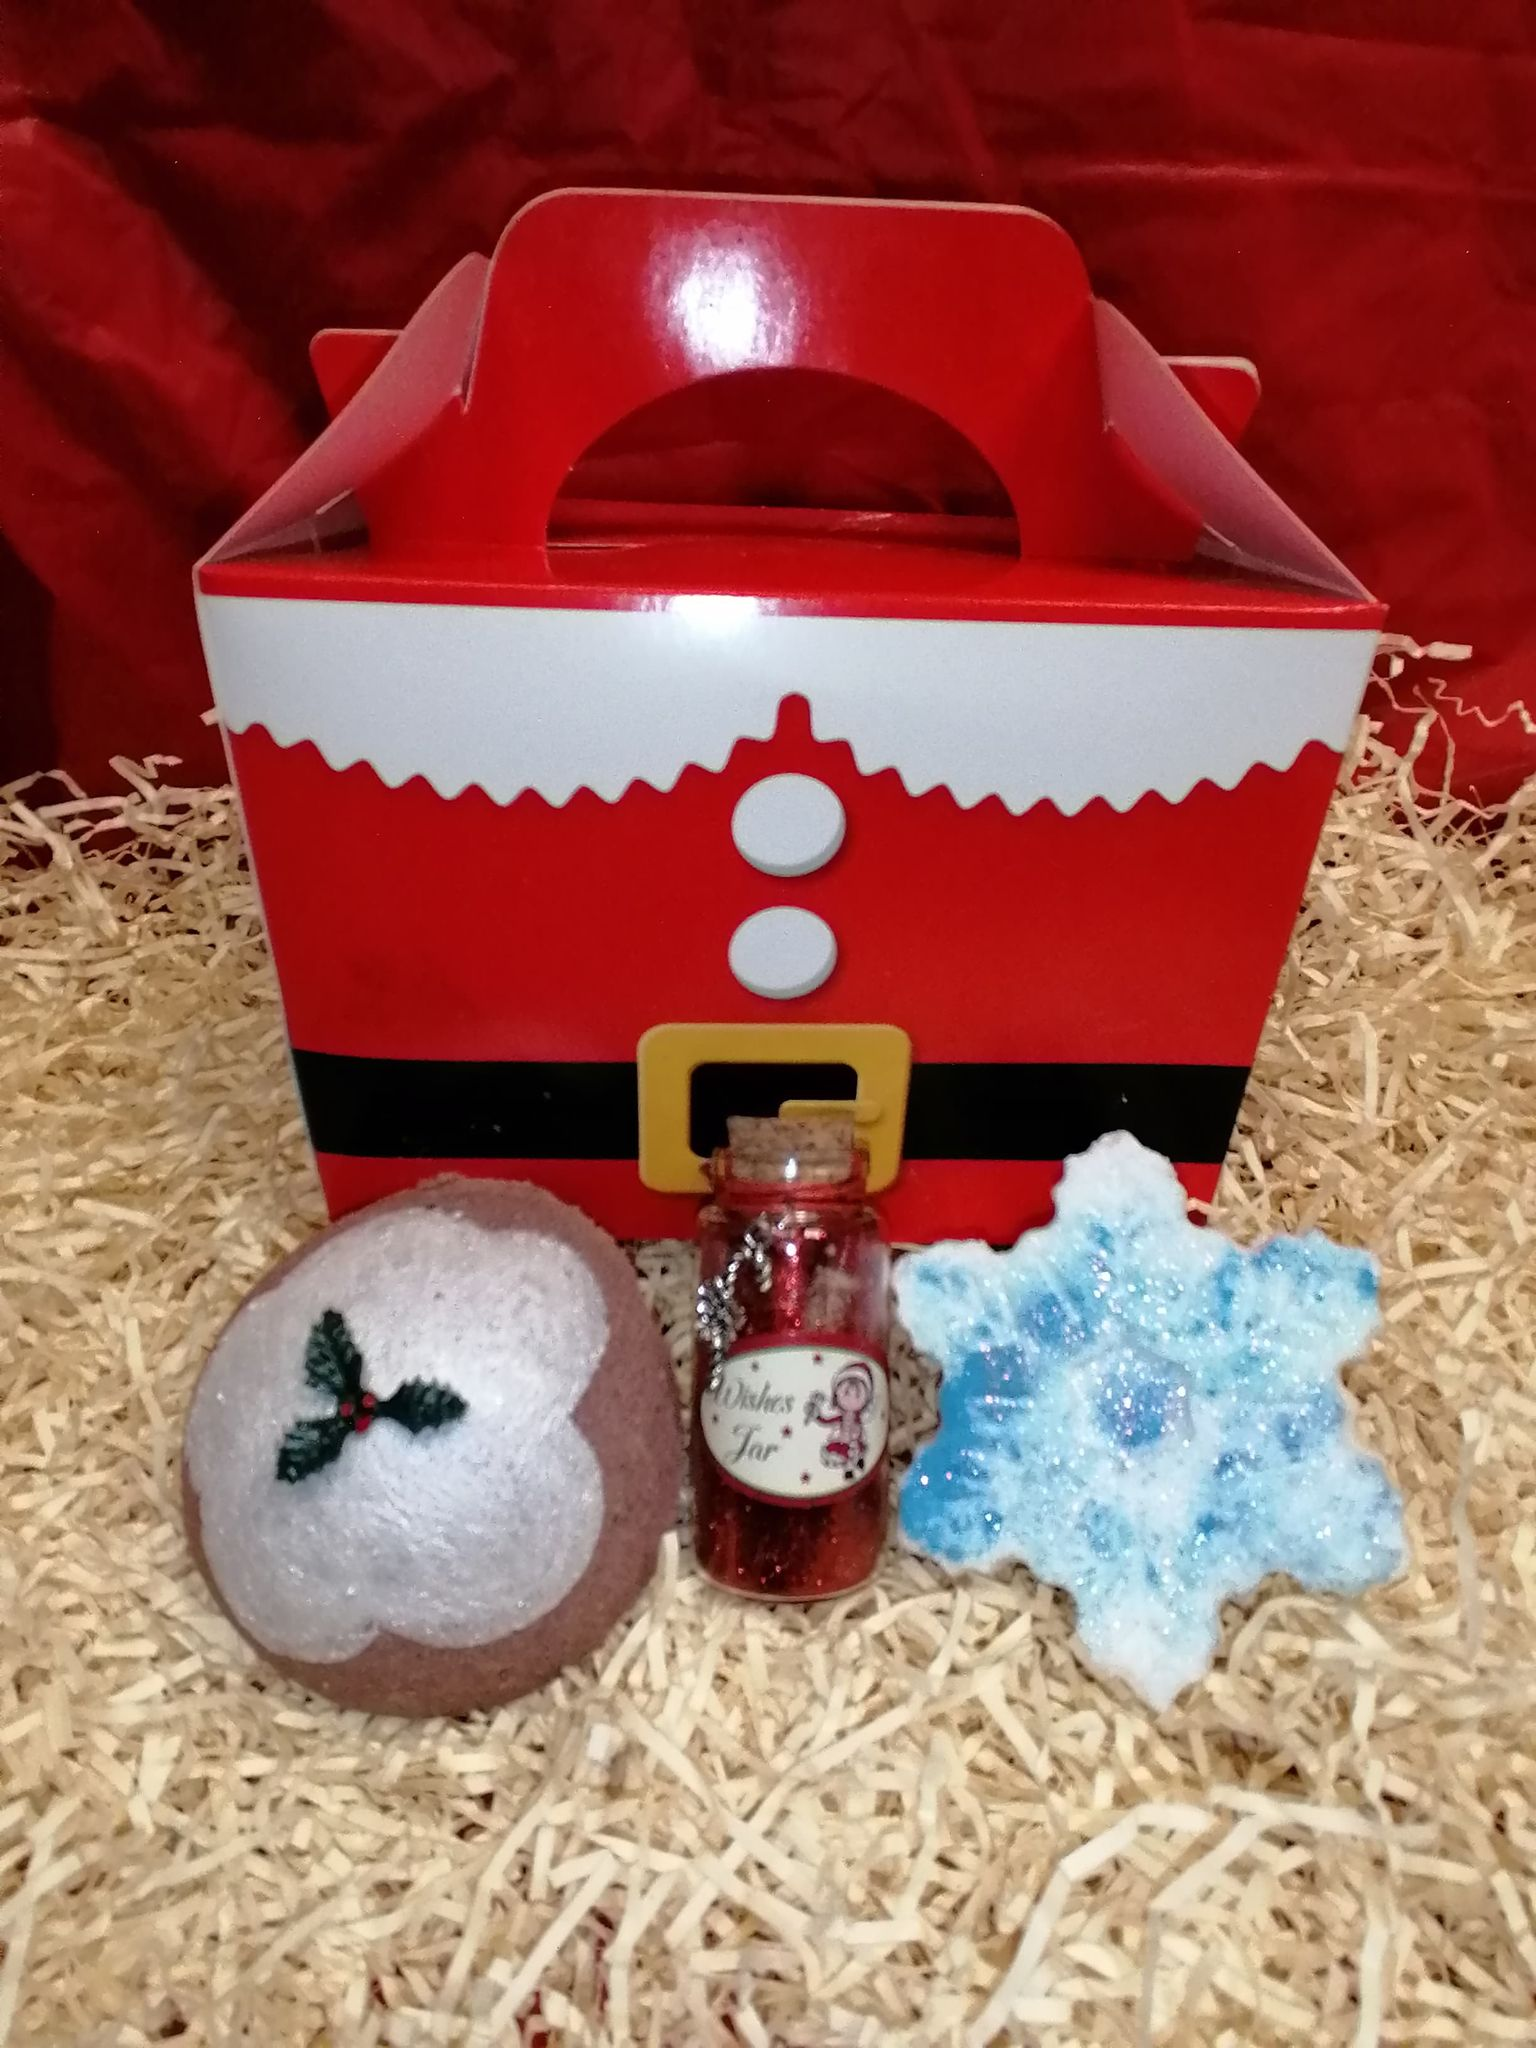 Christmas Eve Box With Toy And Glow In The Dark Snowflake